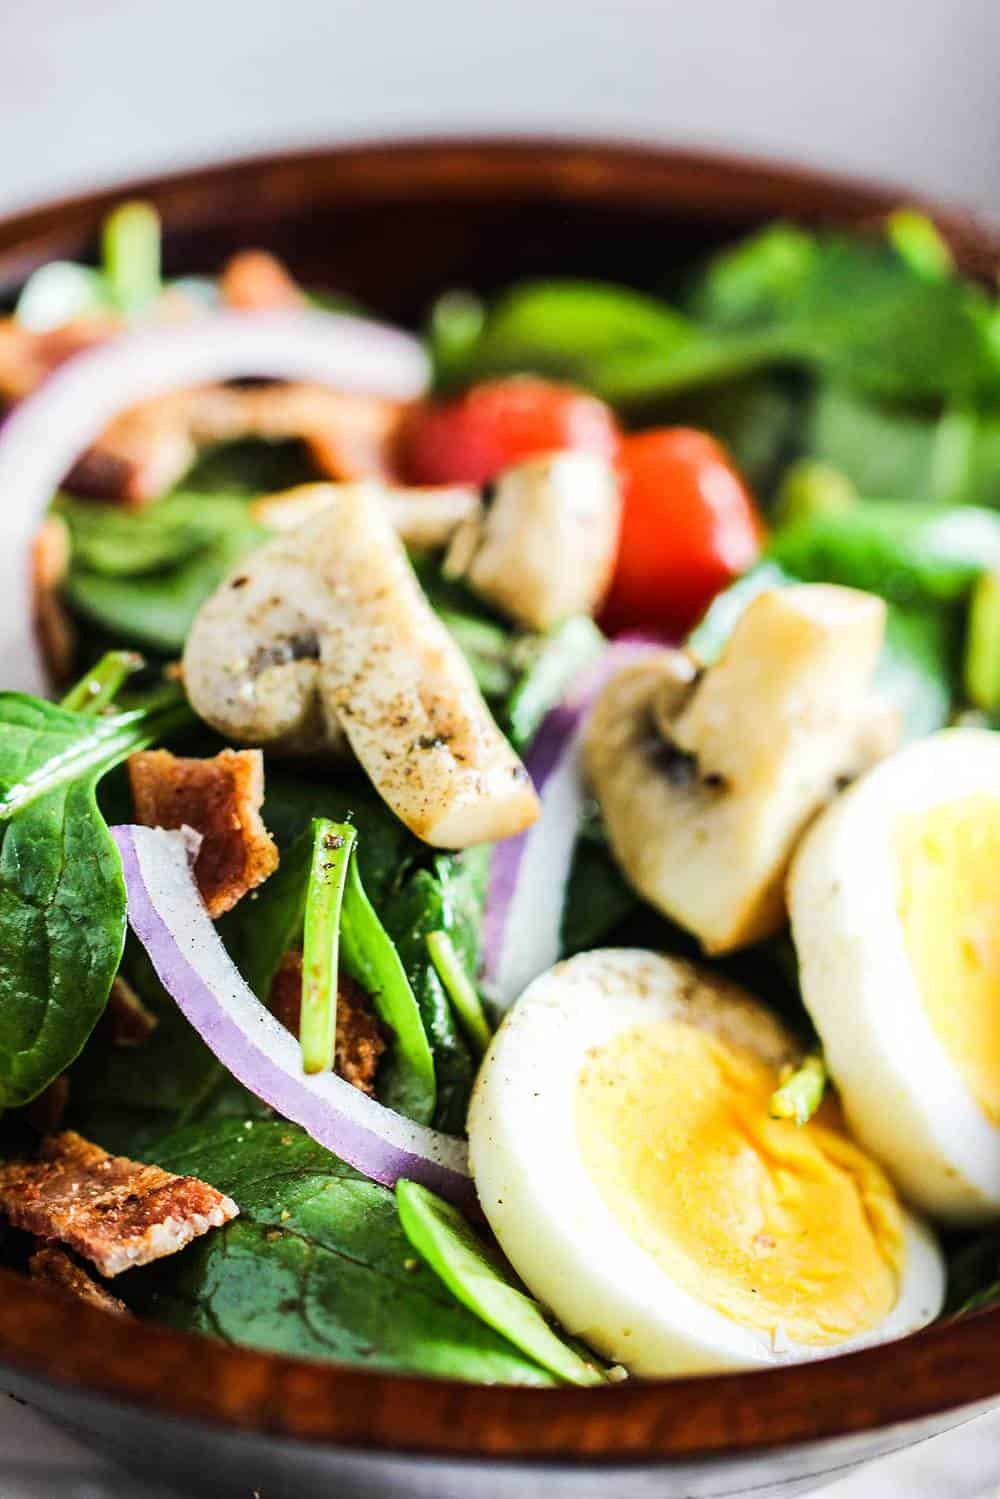 Warm Spinach and Bacon Salad recipe